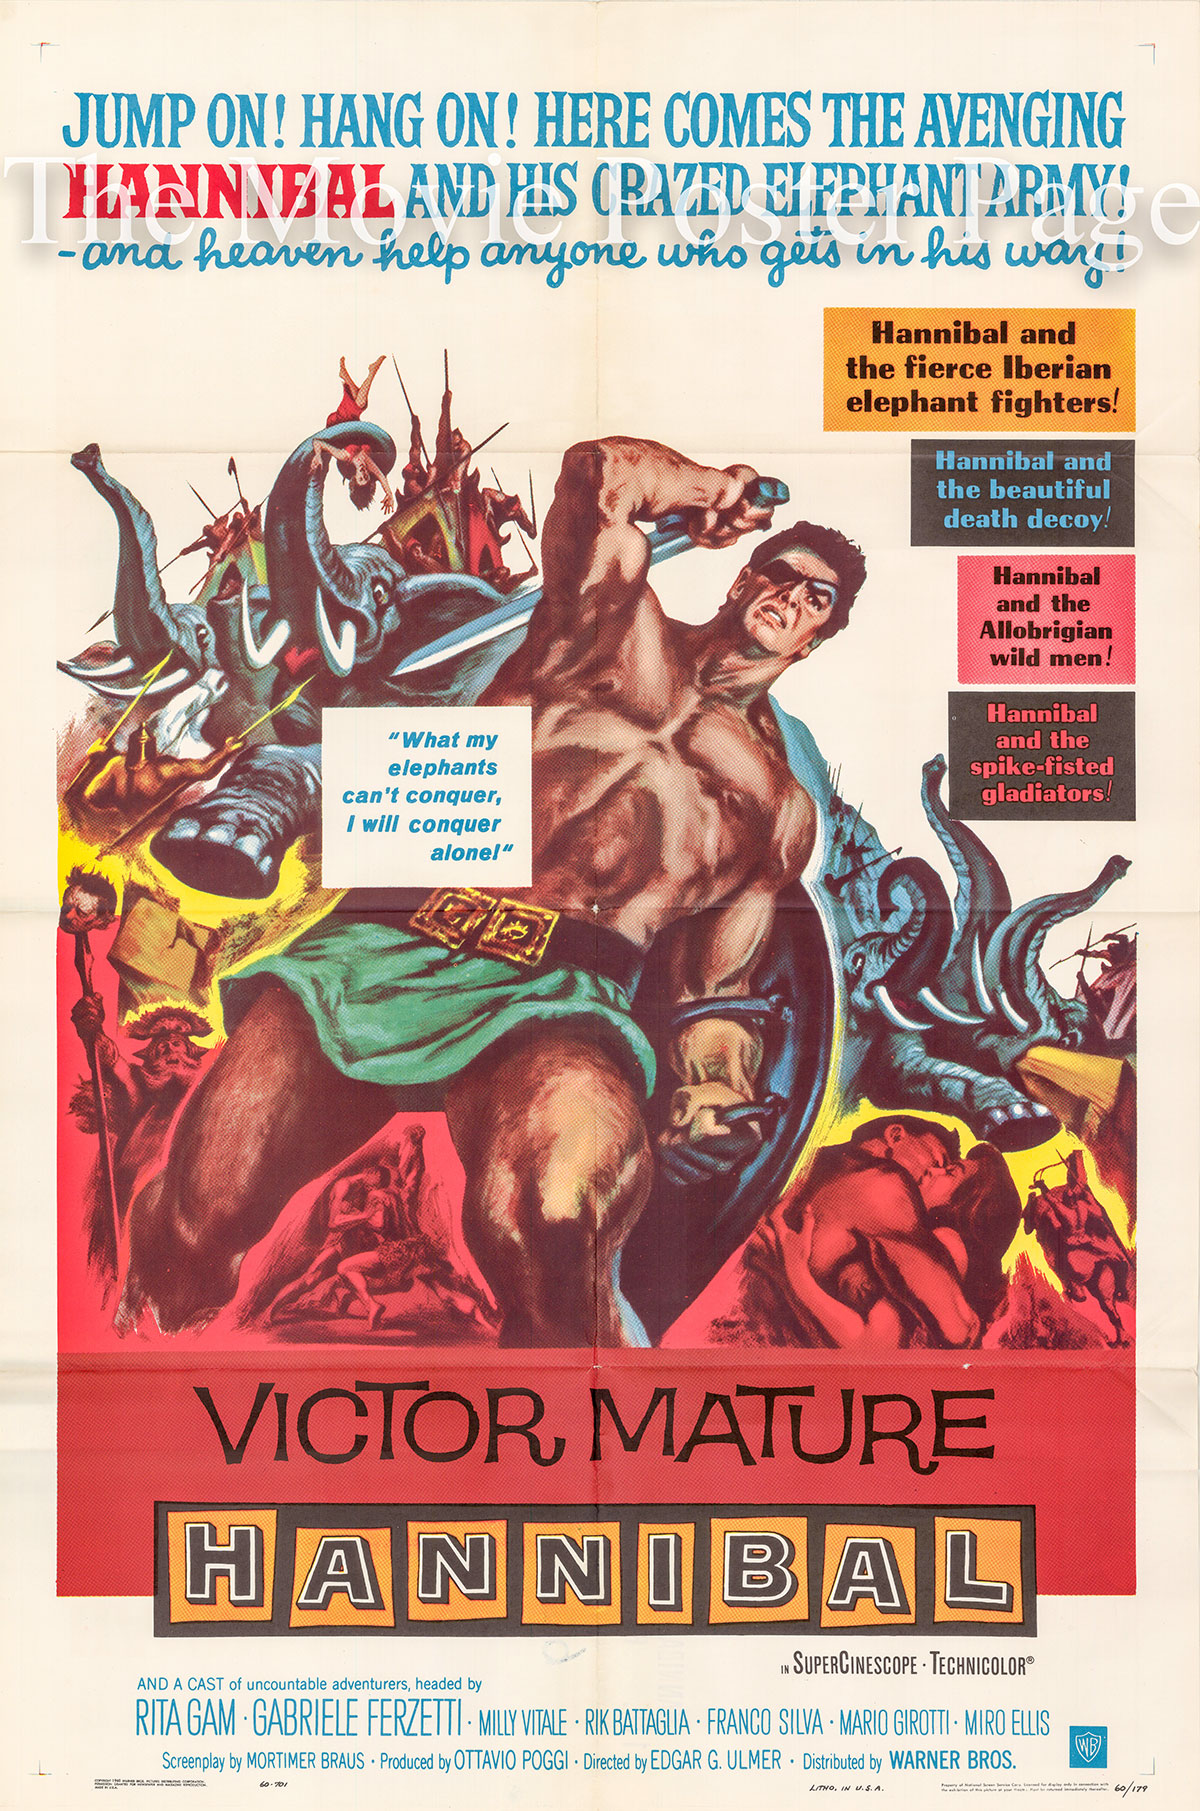 Pictured is a US one-sheet poster for the 1959 Carlo Ludovico Bragaglia film Hannibal starring Victor Mature as Hannibal.